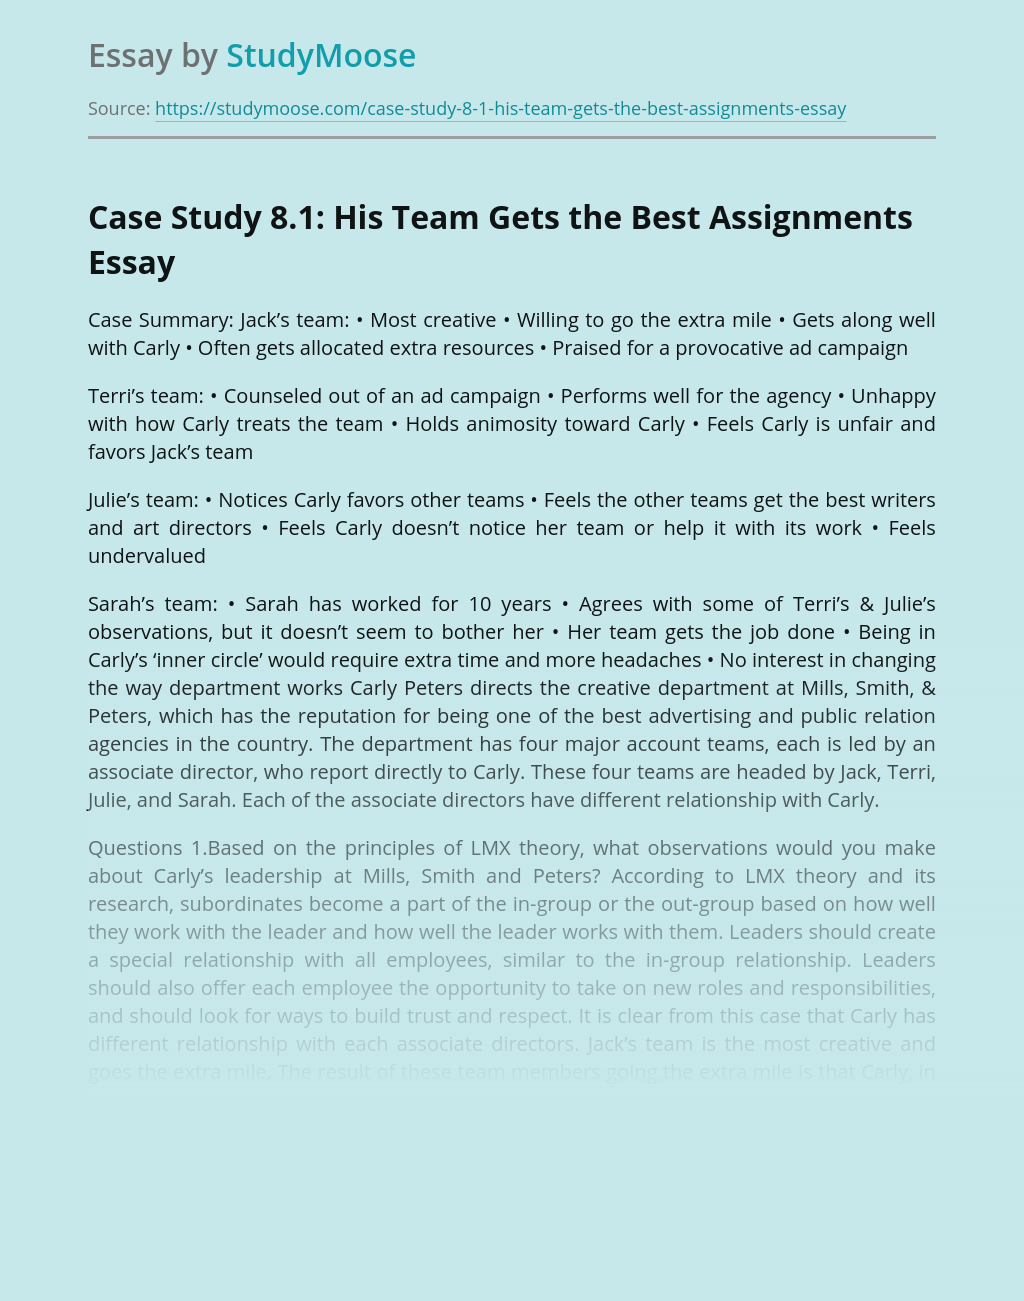 Case Study 8.1: His Team Gets the Best Assignments